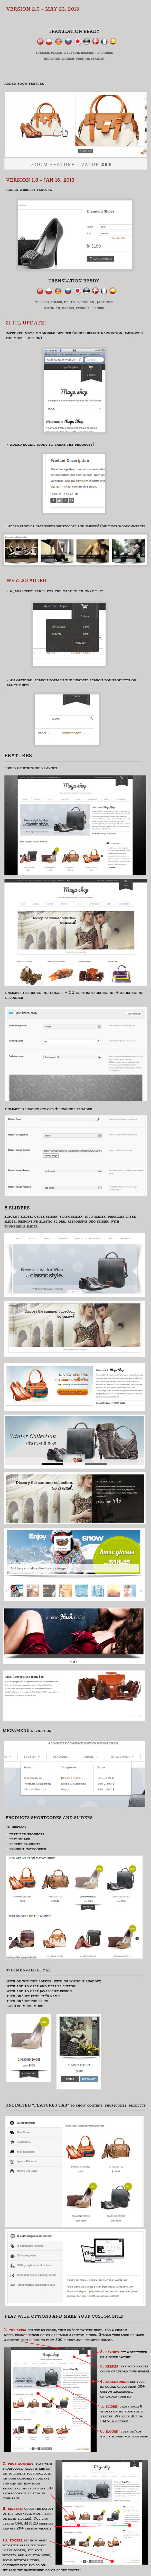 MayaShop - A Flexible Responsive e-Commerce Theme - 2